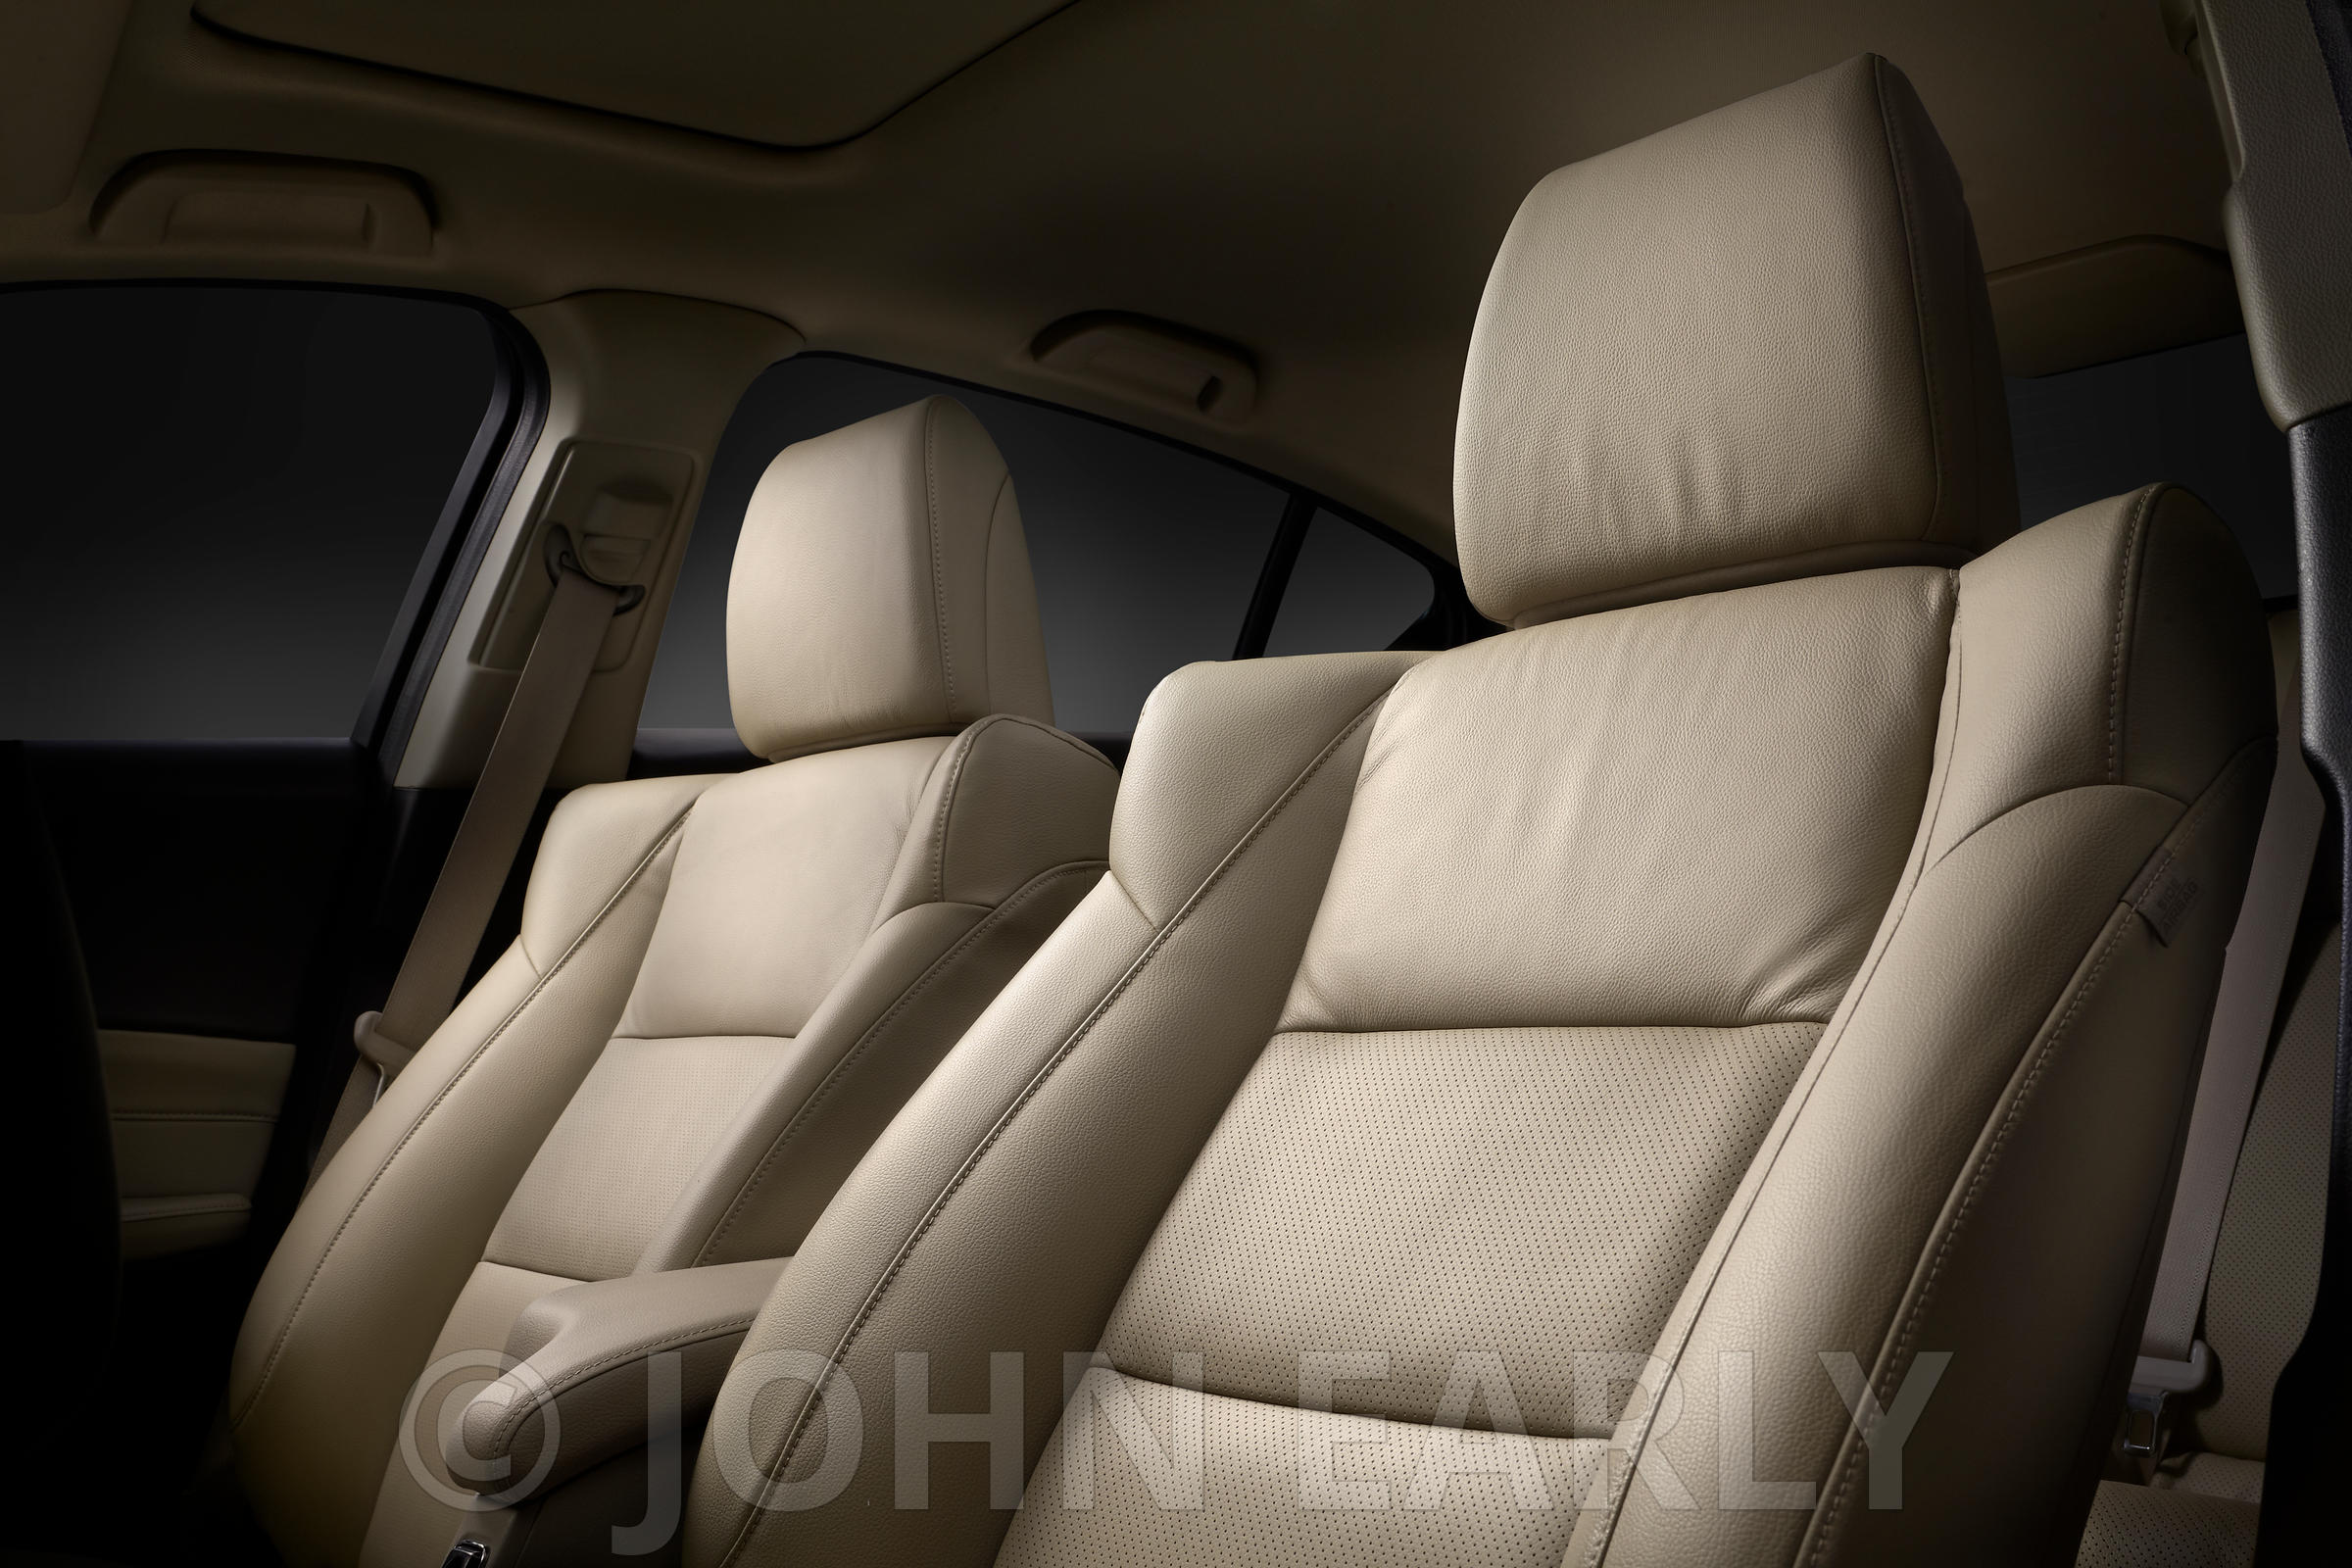 Moody Low Angle View of Tan Leather Front Seats In A Car